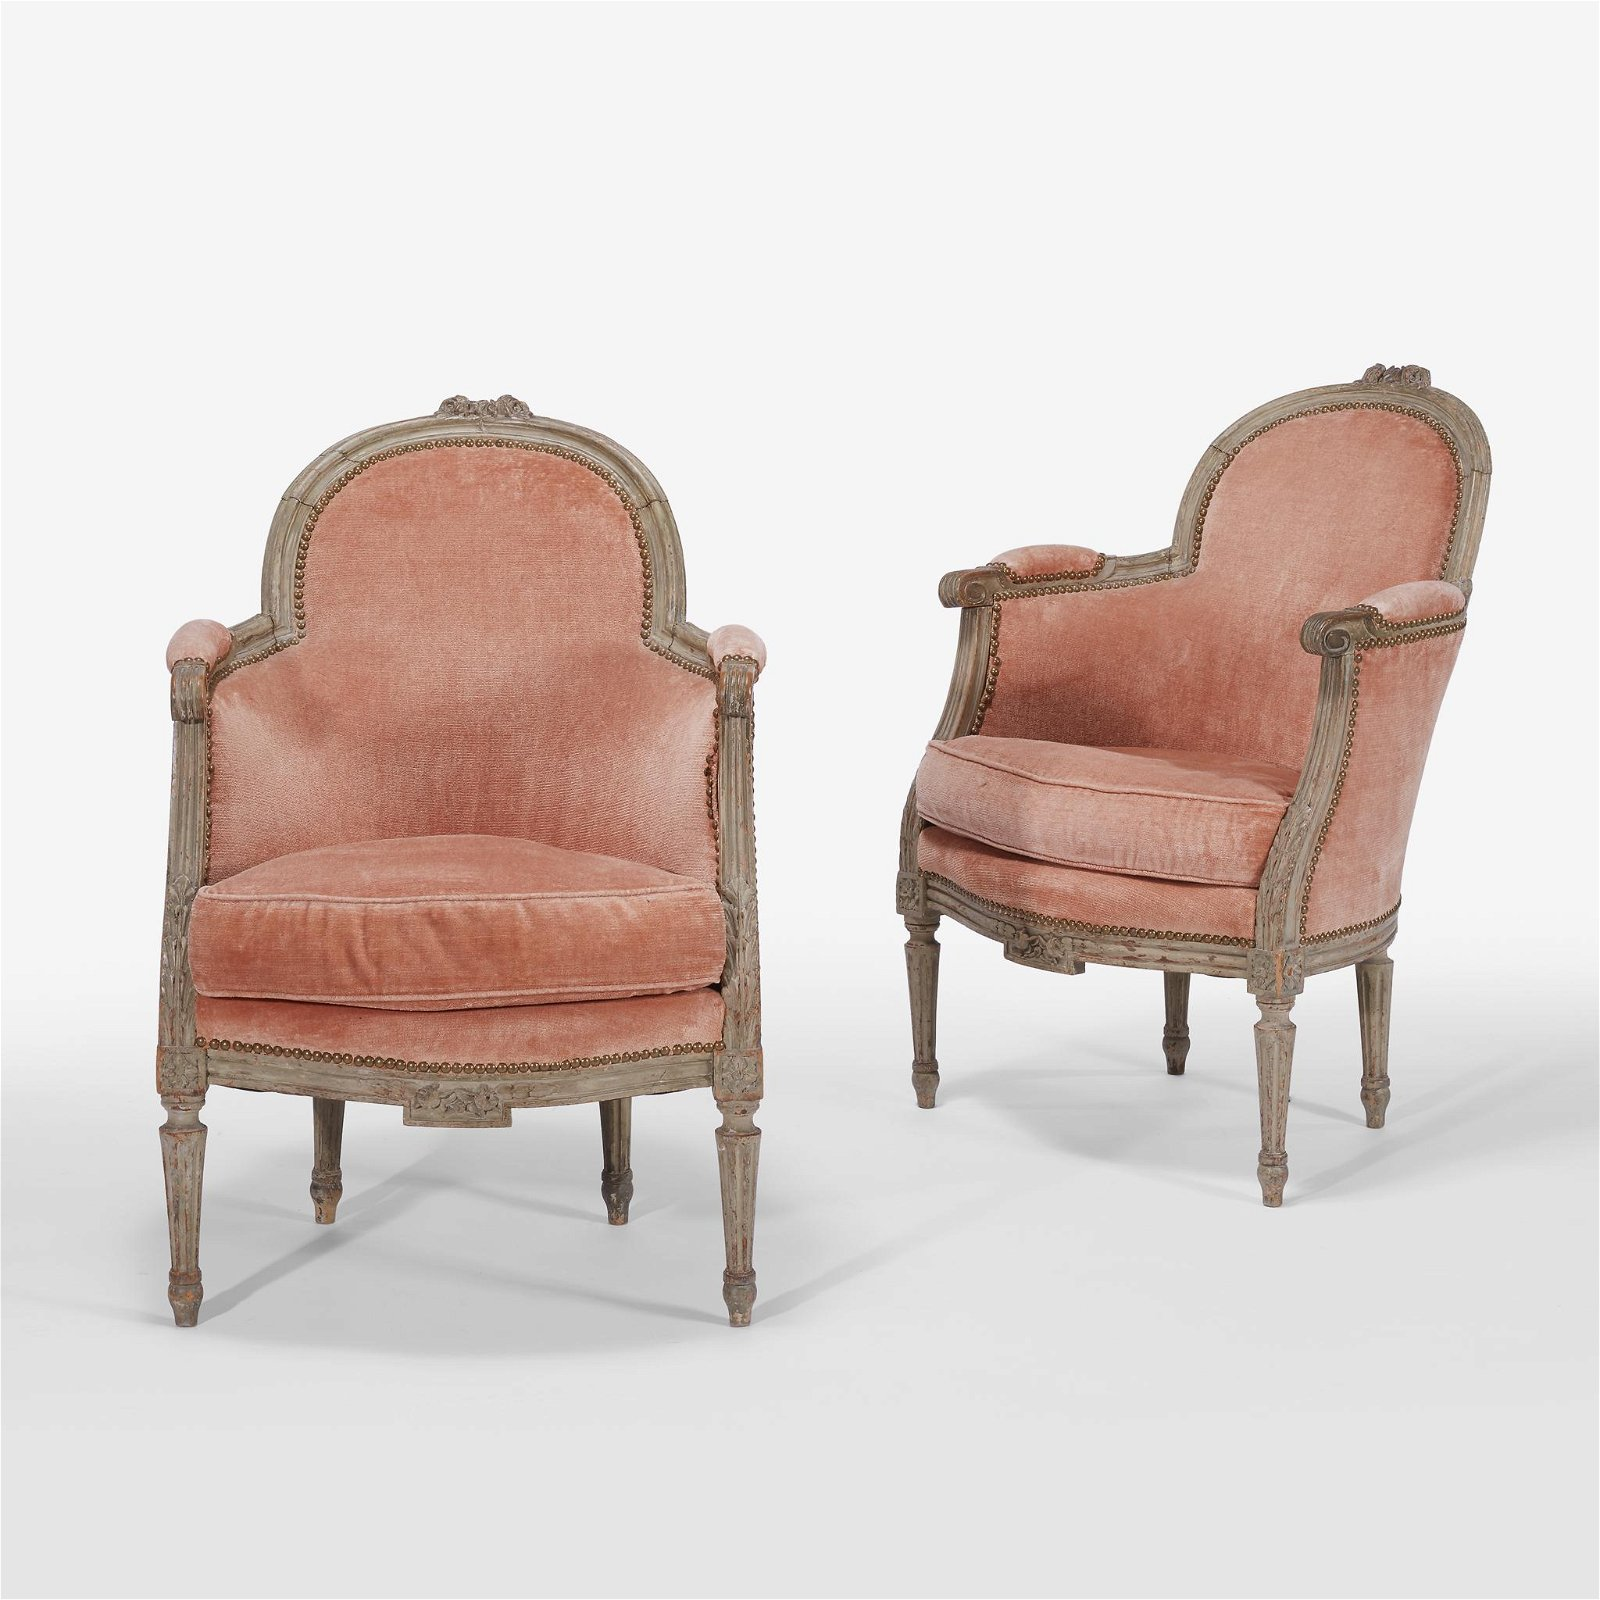 Pair of French Louis XVI style painted beechwood arm